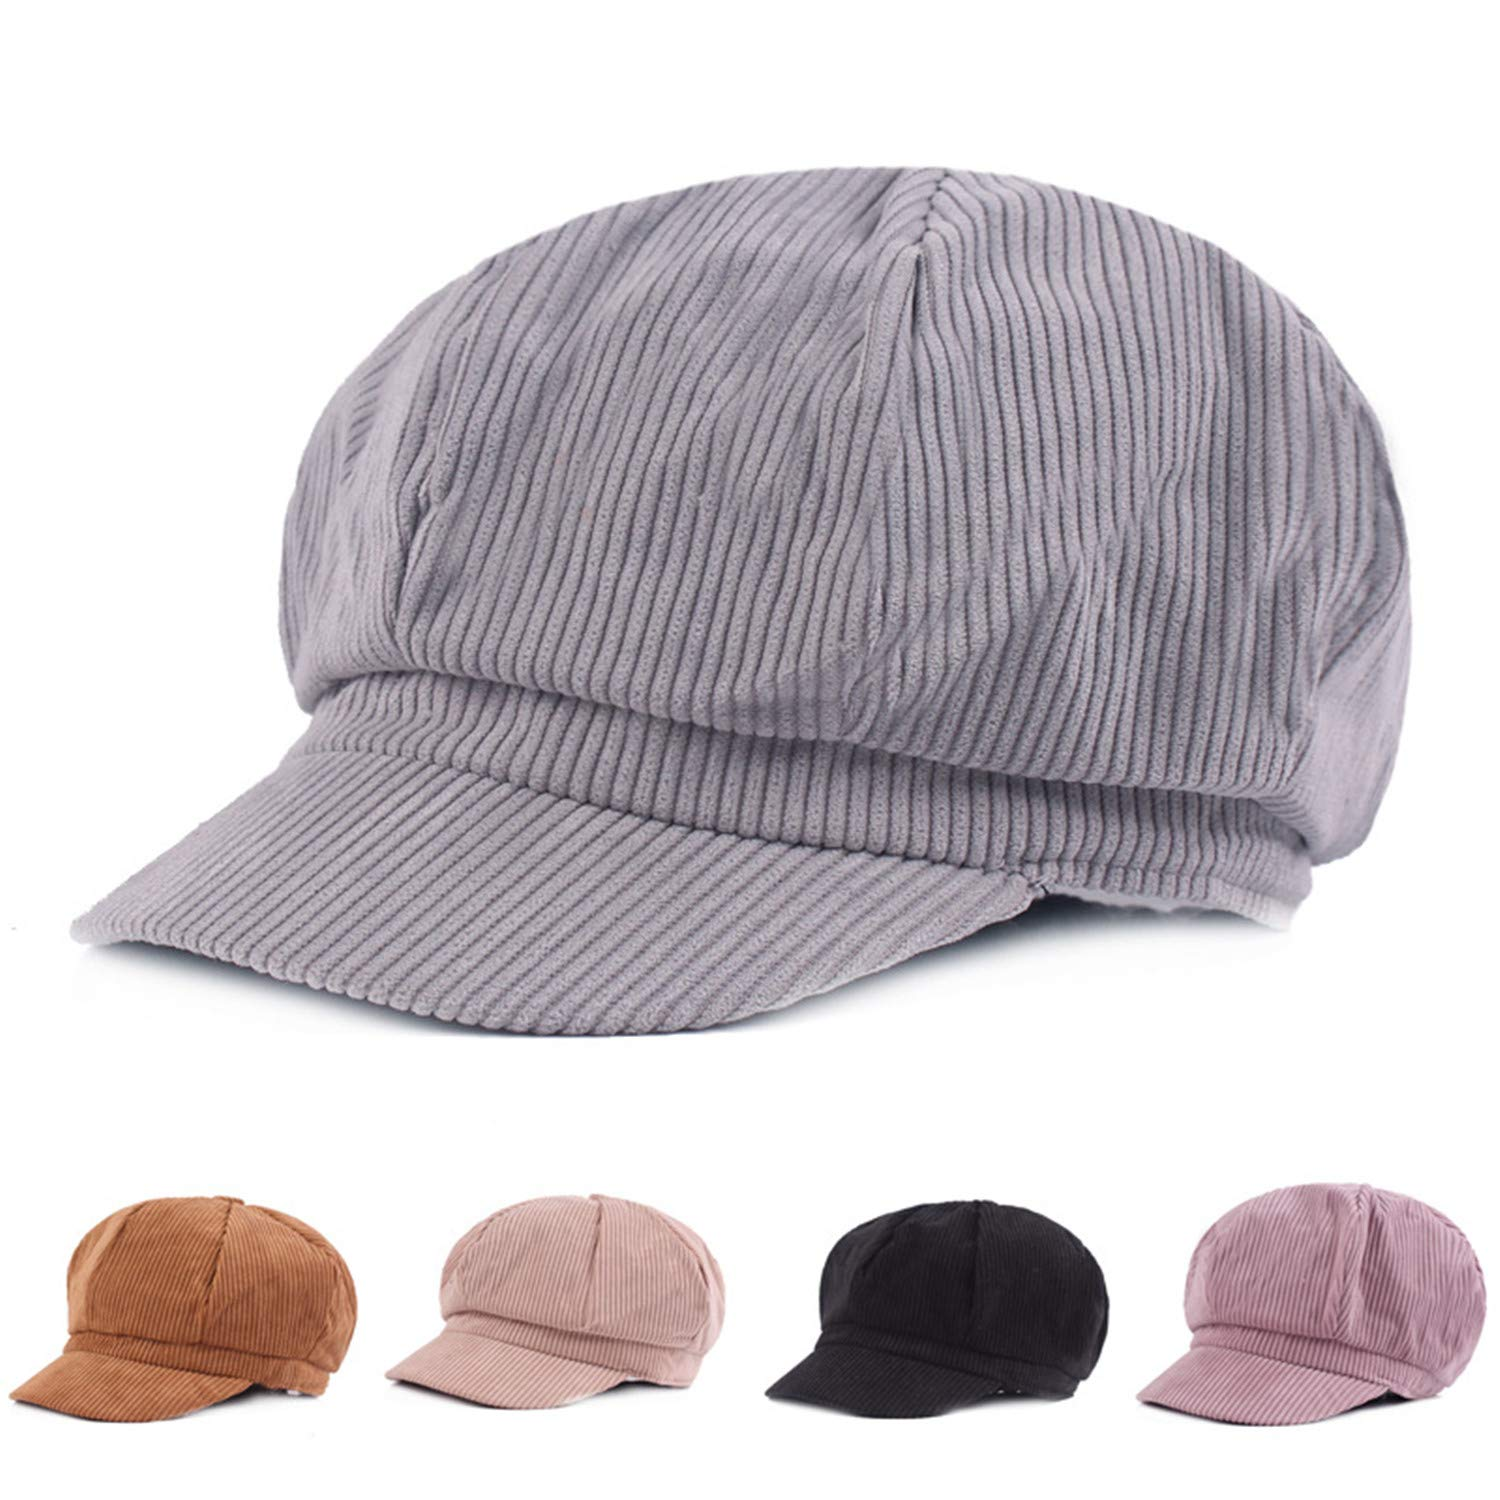 Yulongo Female Spring Art Octagonal Hat Fashion Women Vintage Beret Cap Flat Peaked Hat Striped Beret Retro British Hat